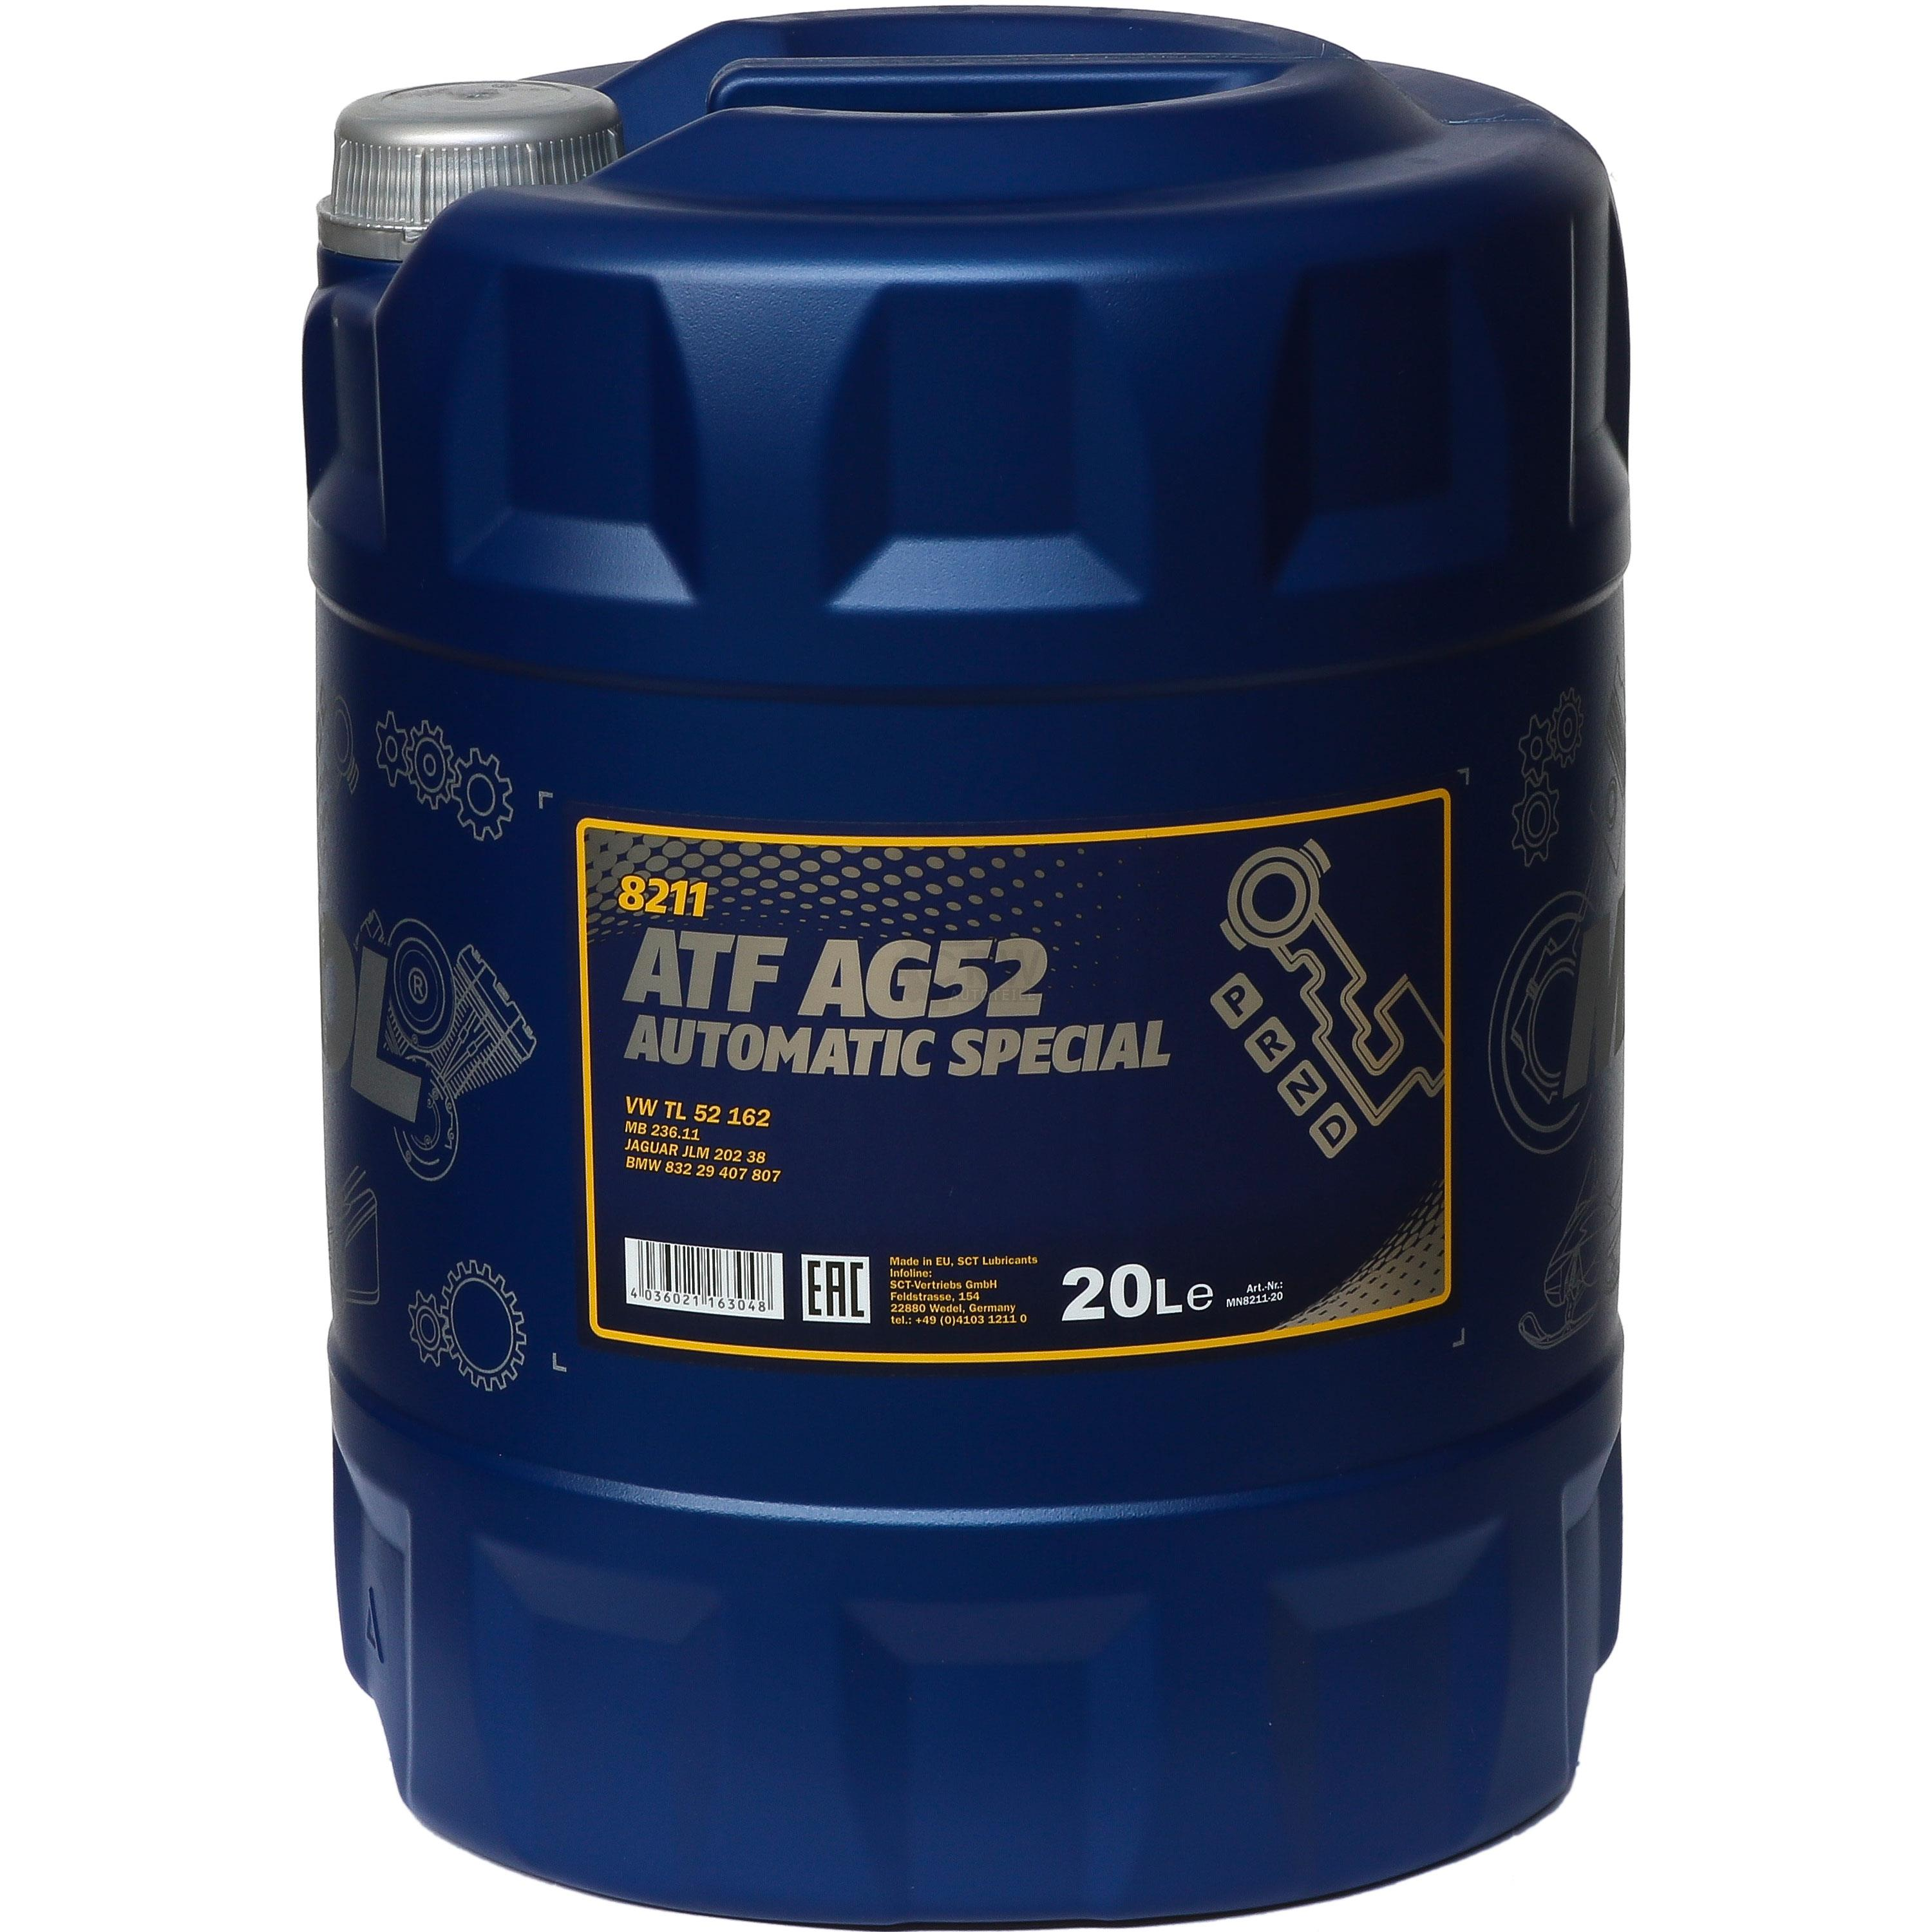 Details about 20 Liter Mannol Automatic Transmission Fluid Atf AG52 Special  Incl  Drain Cock